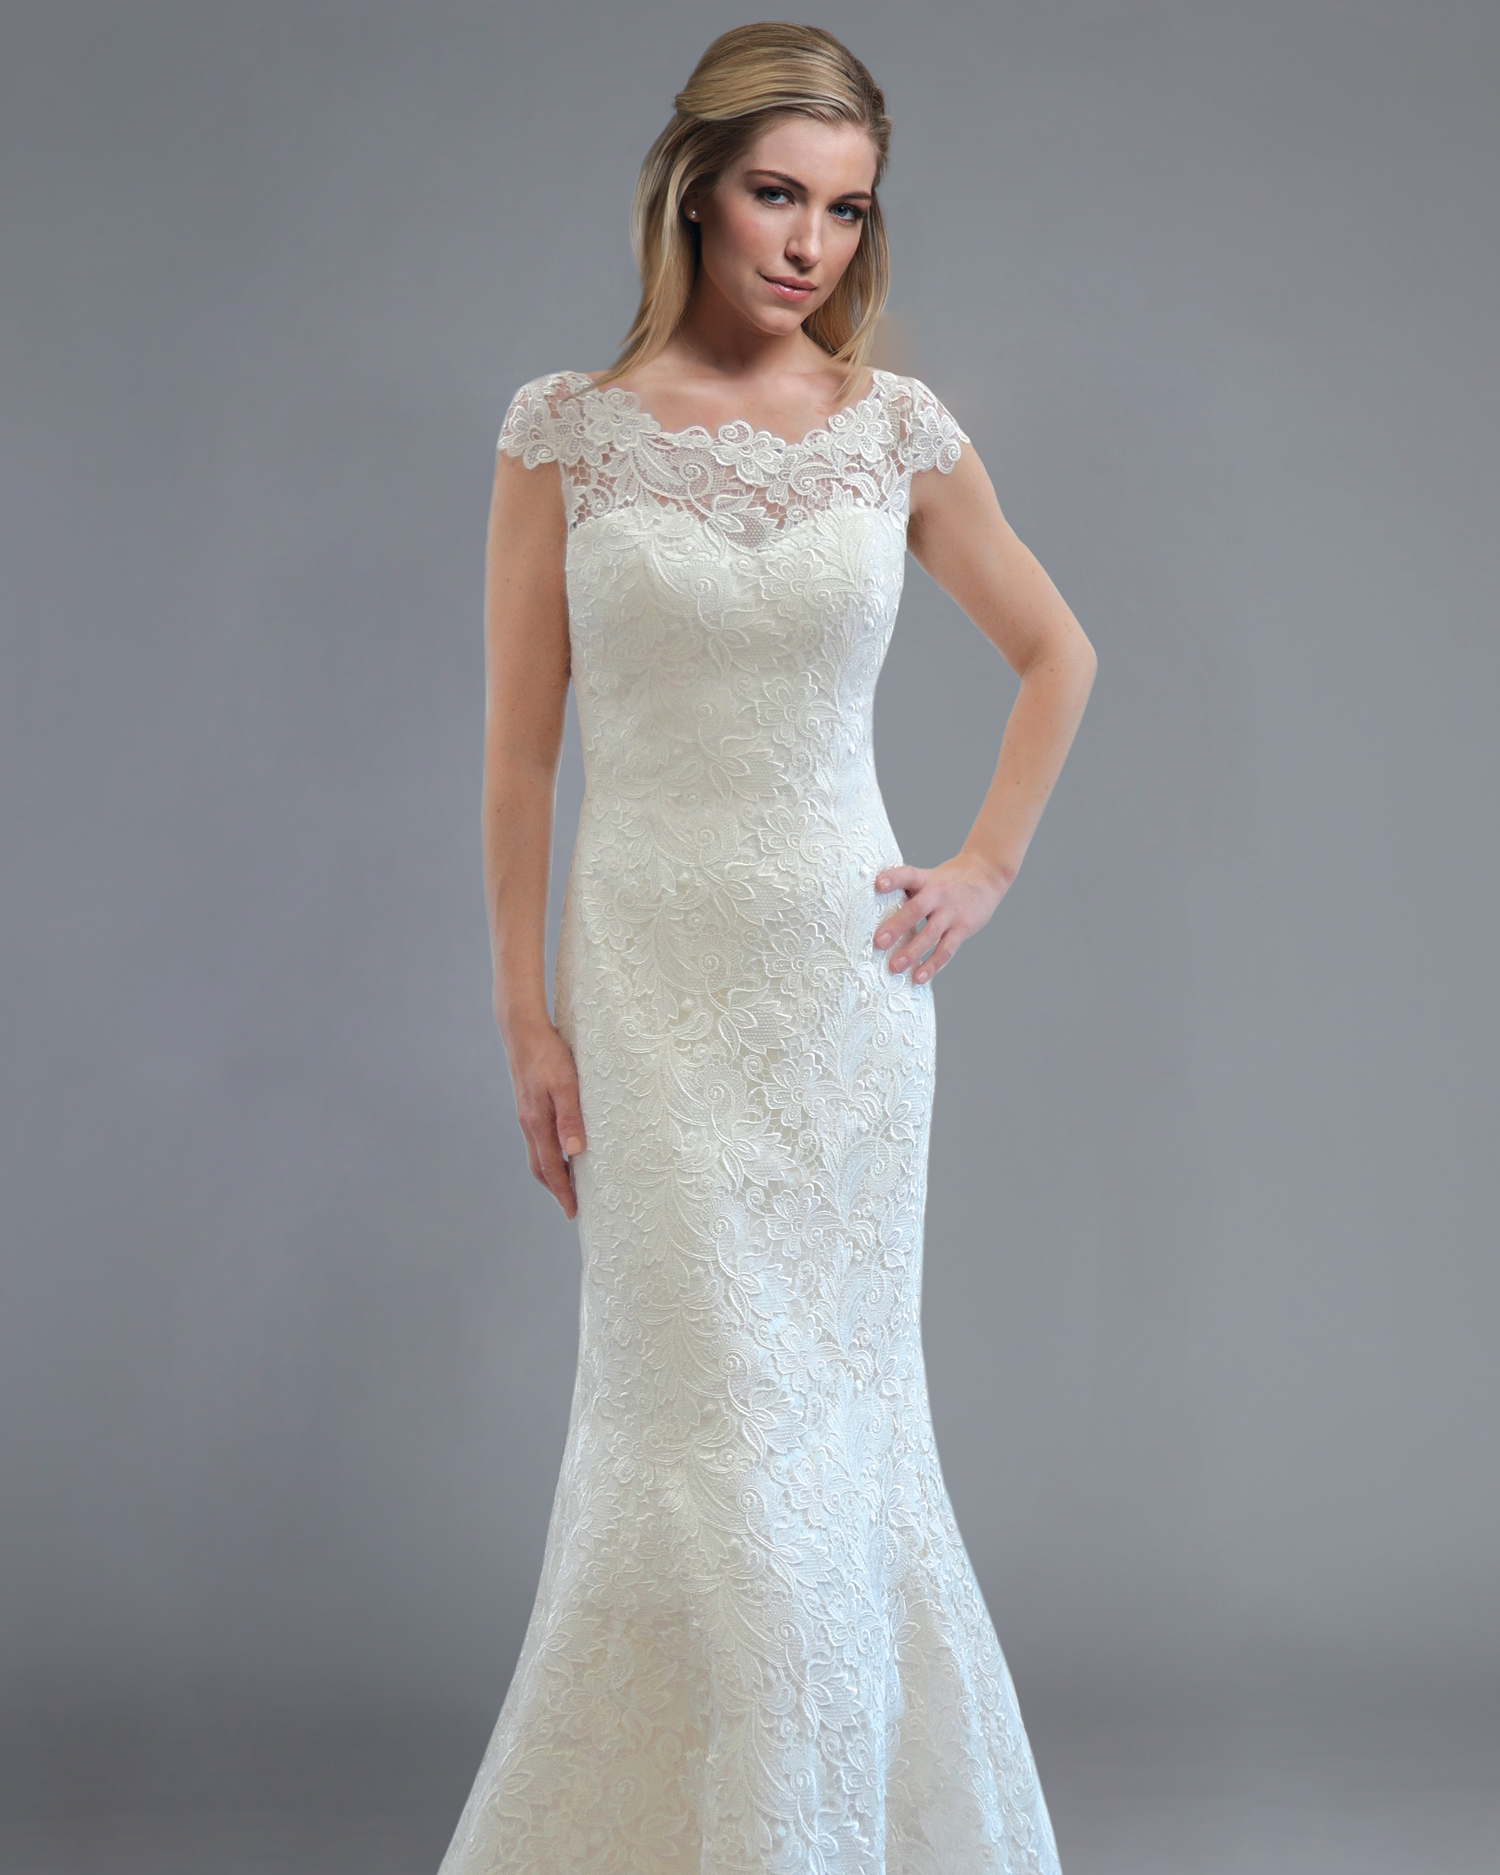 Lace Wedding Dresses, Spring 2013 Bridal Fashion Week